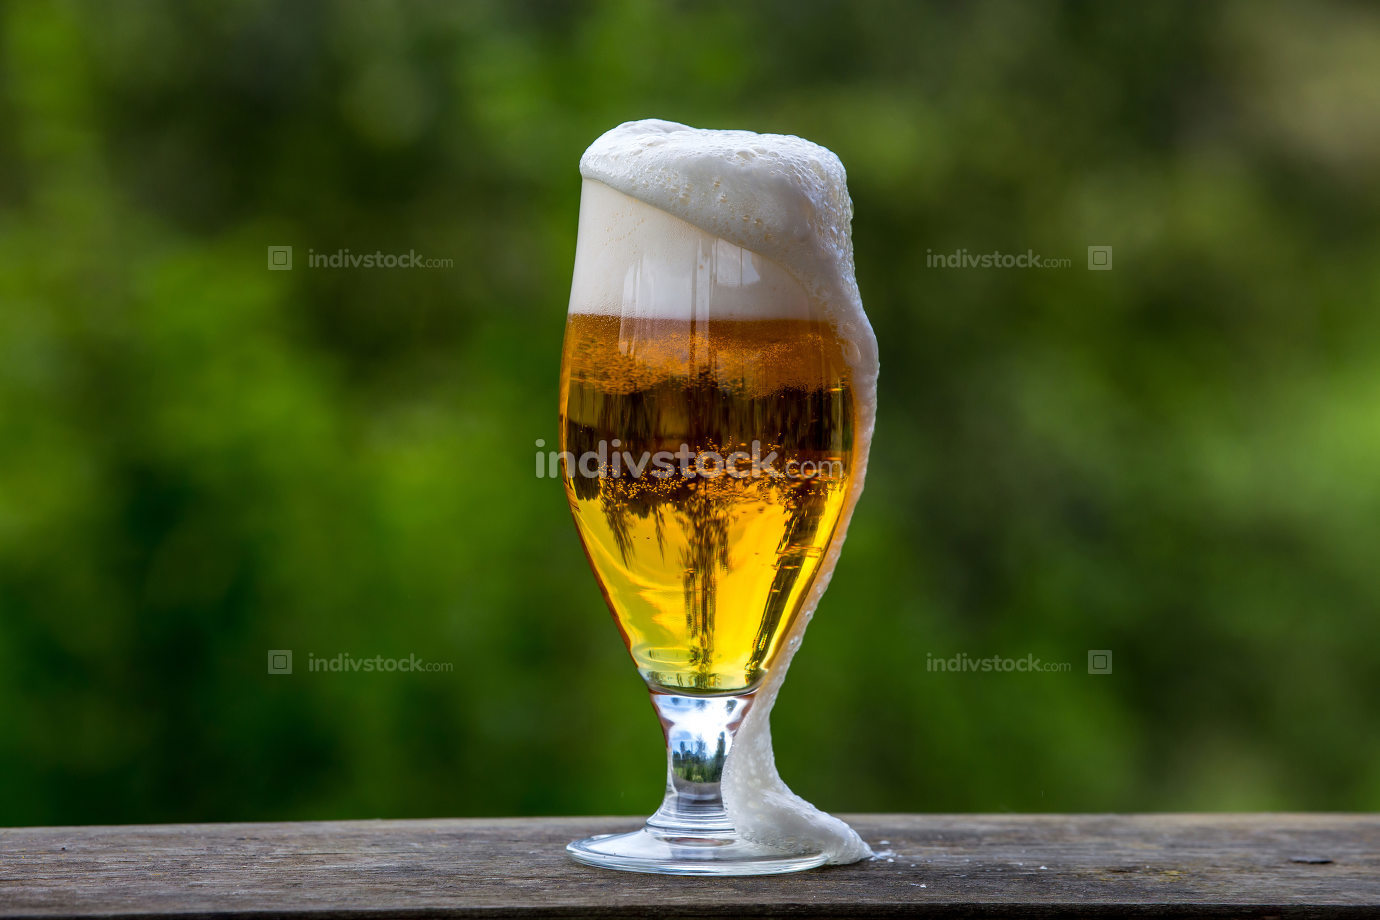 Glass of beer on green nature background.